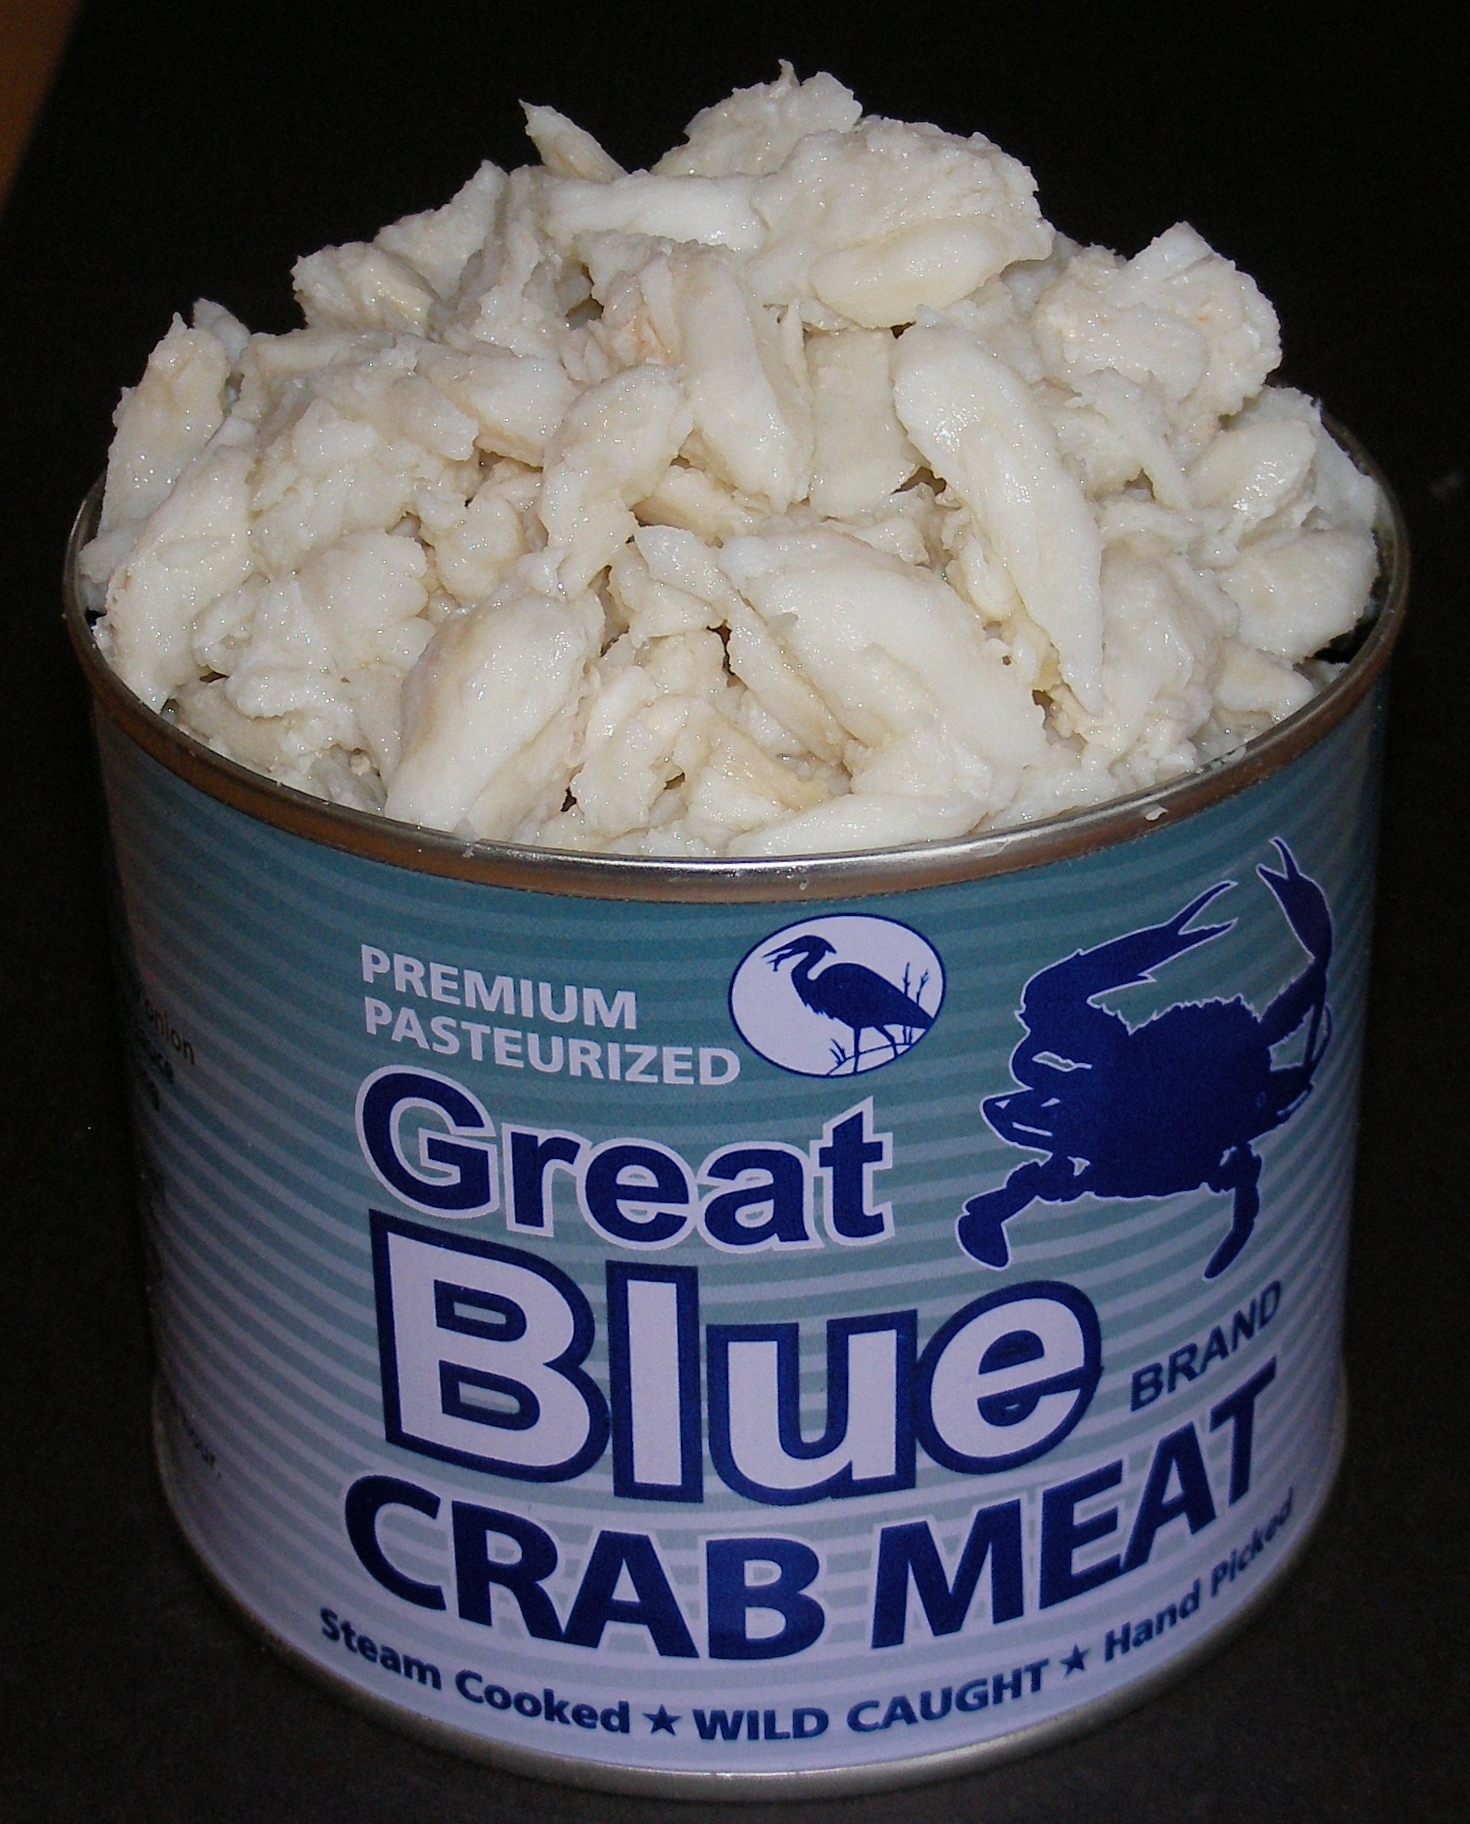 Blue Crab Meat Great Blue Brand Crab Meat